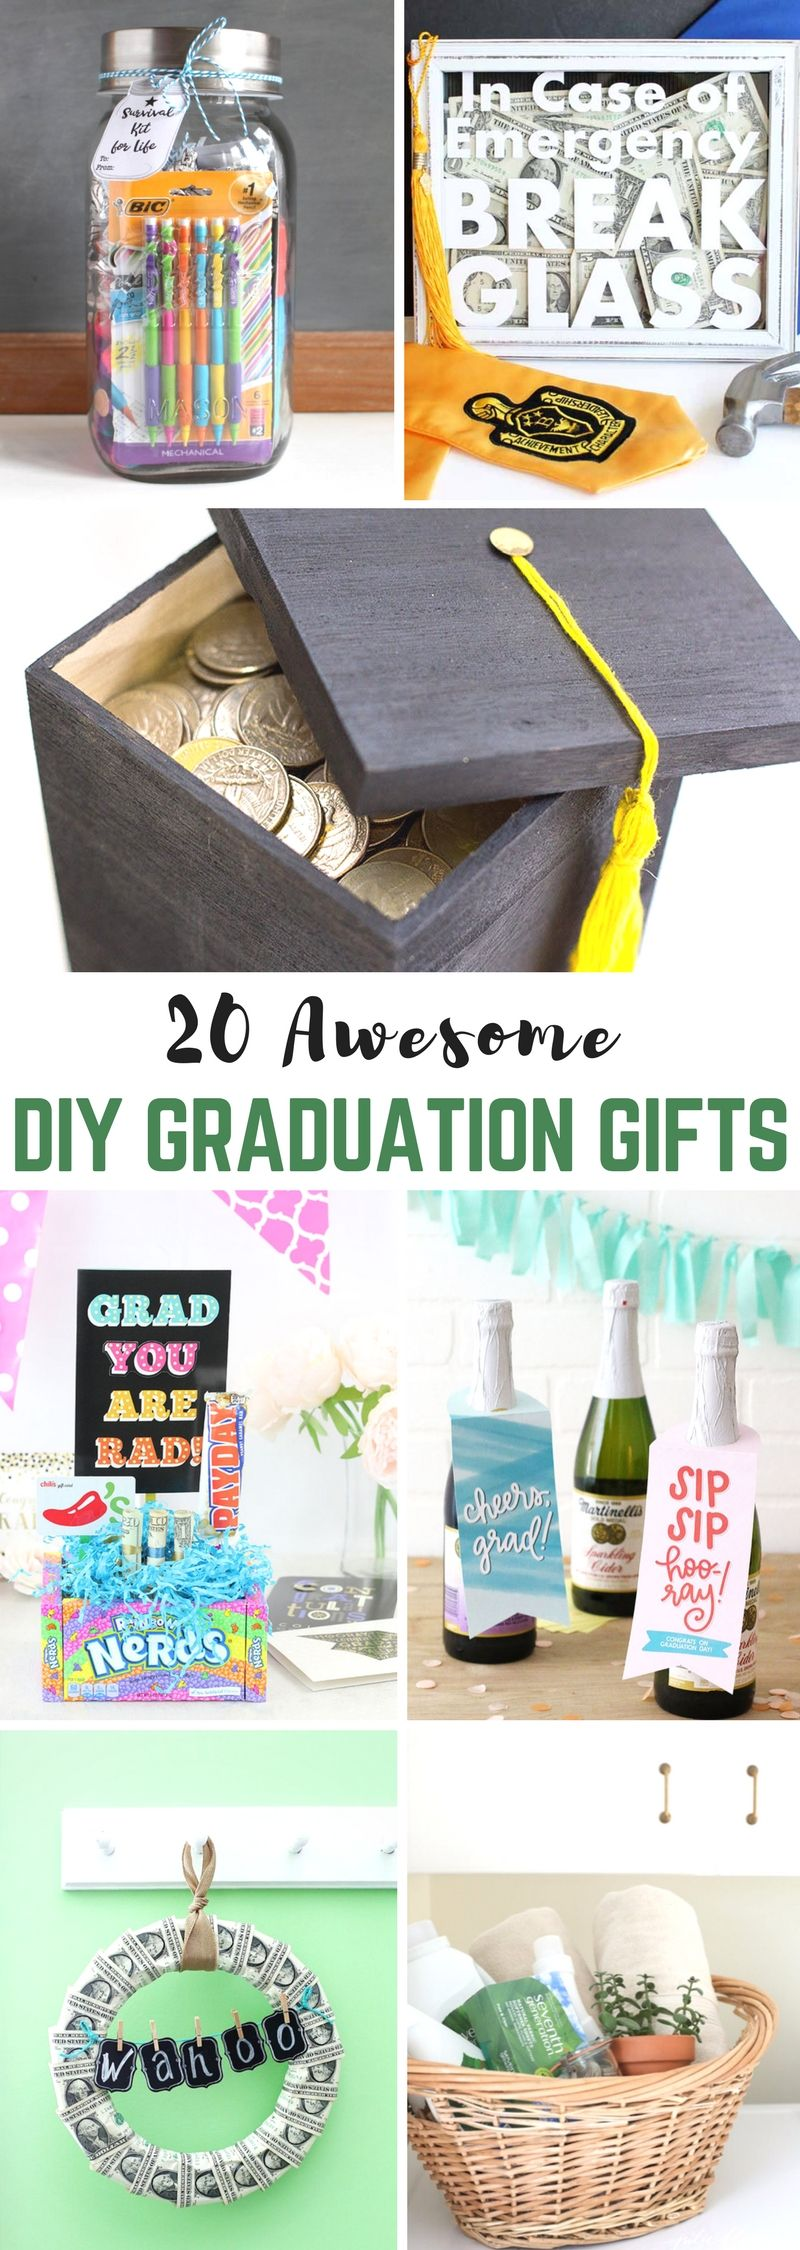 Diy graduation gifts graduation gradgifts highschoolgraduation 20 awesome diy graduation gifts yesterday on tuesday solutioingenieria Images